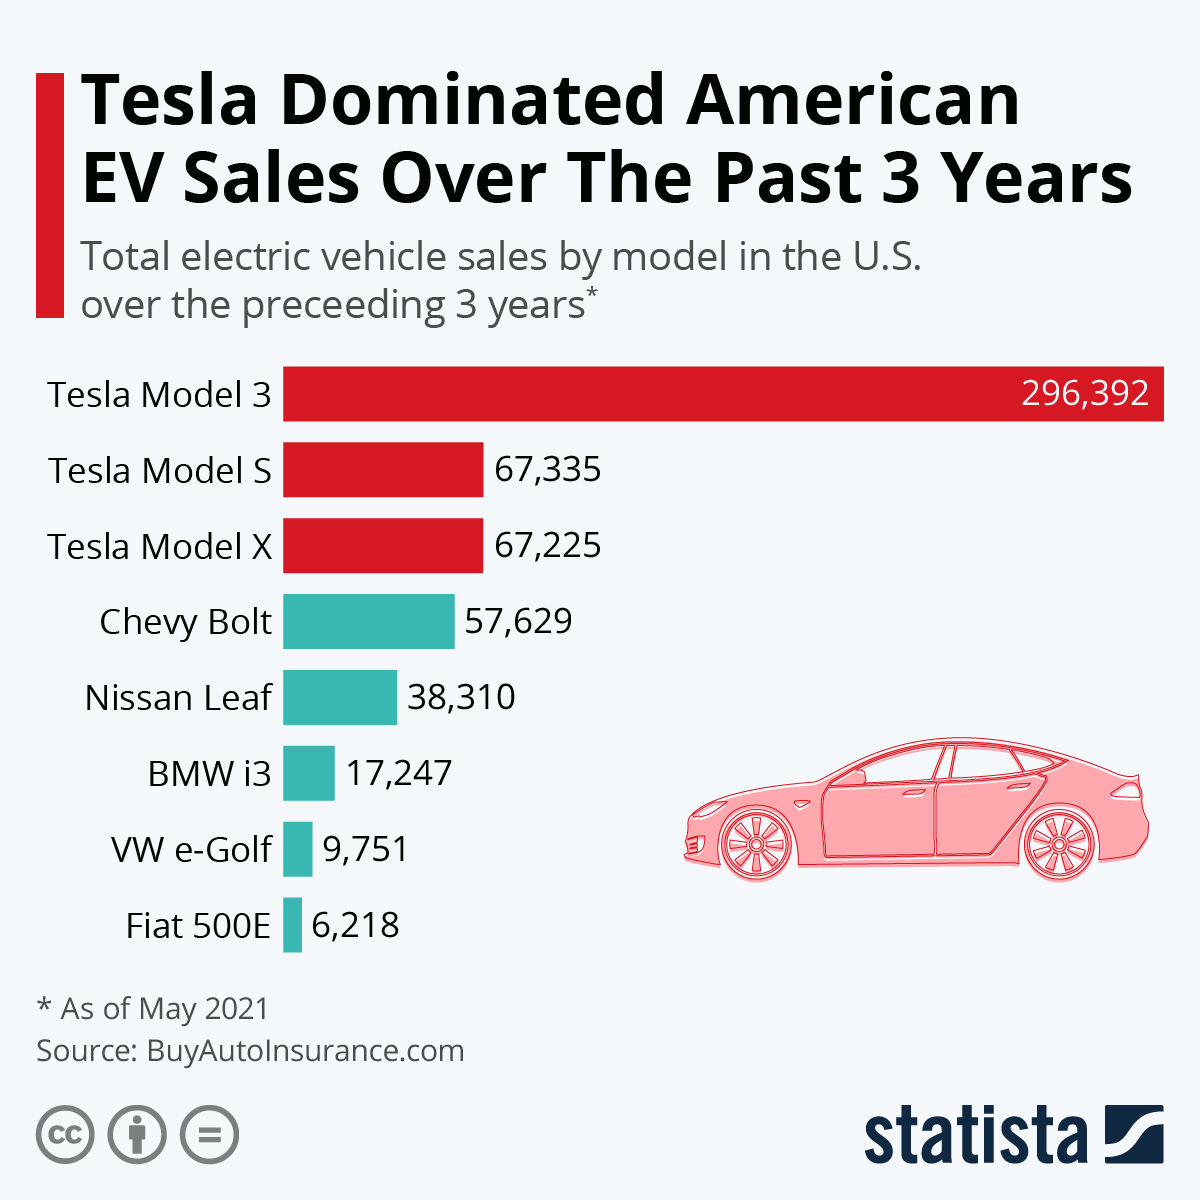 Tesla has dominated US EV sales over the last 3 years